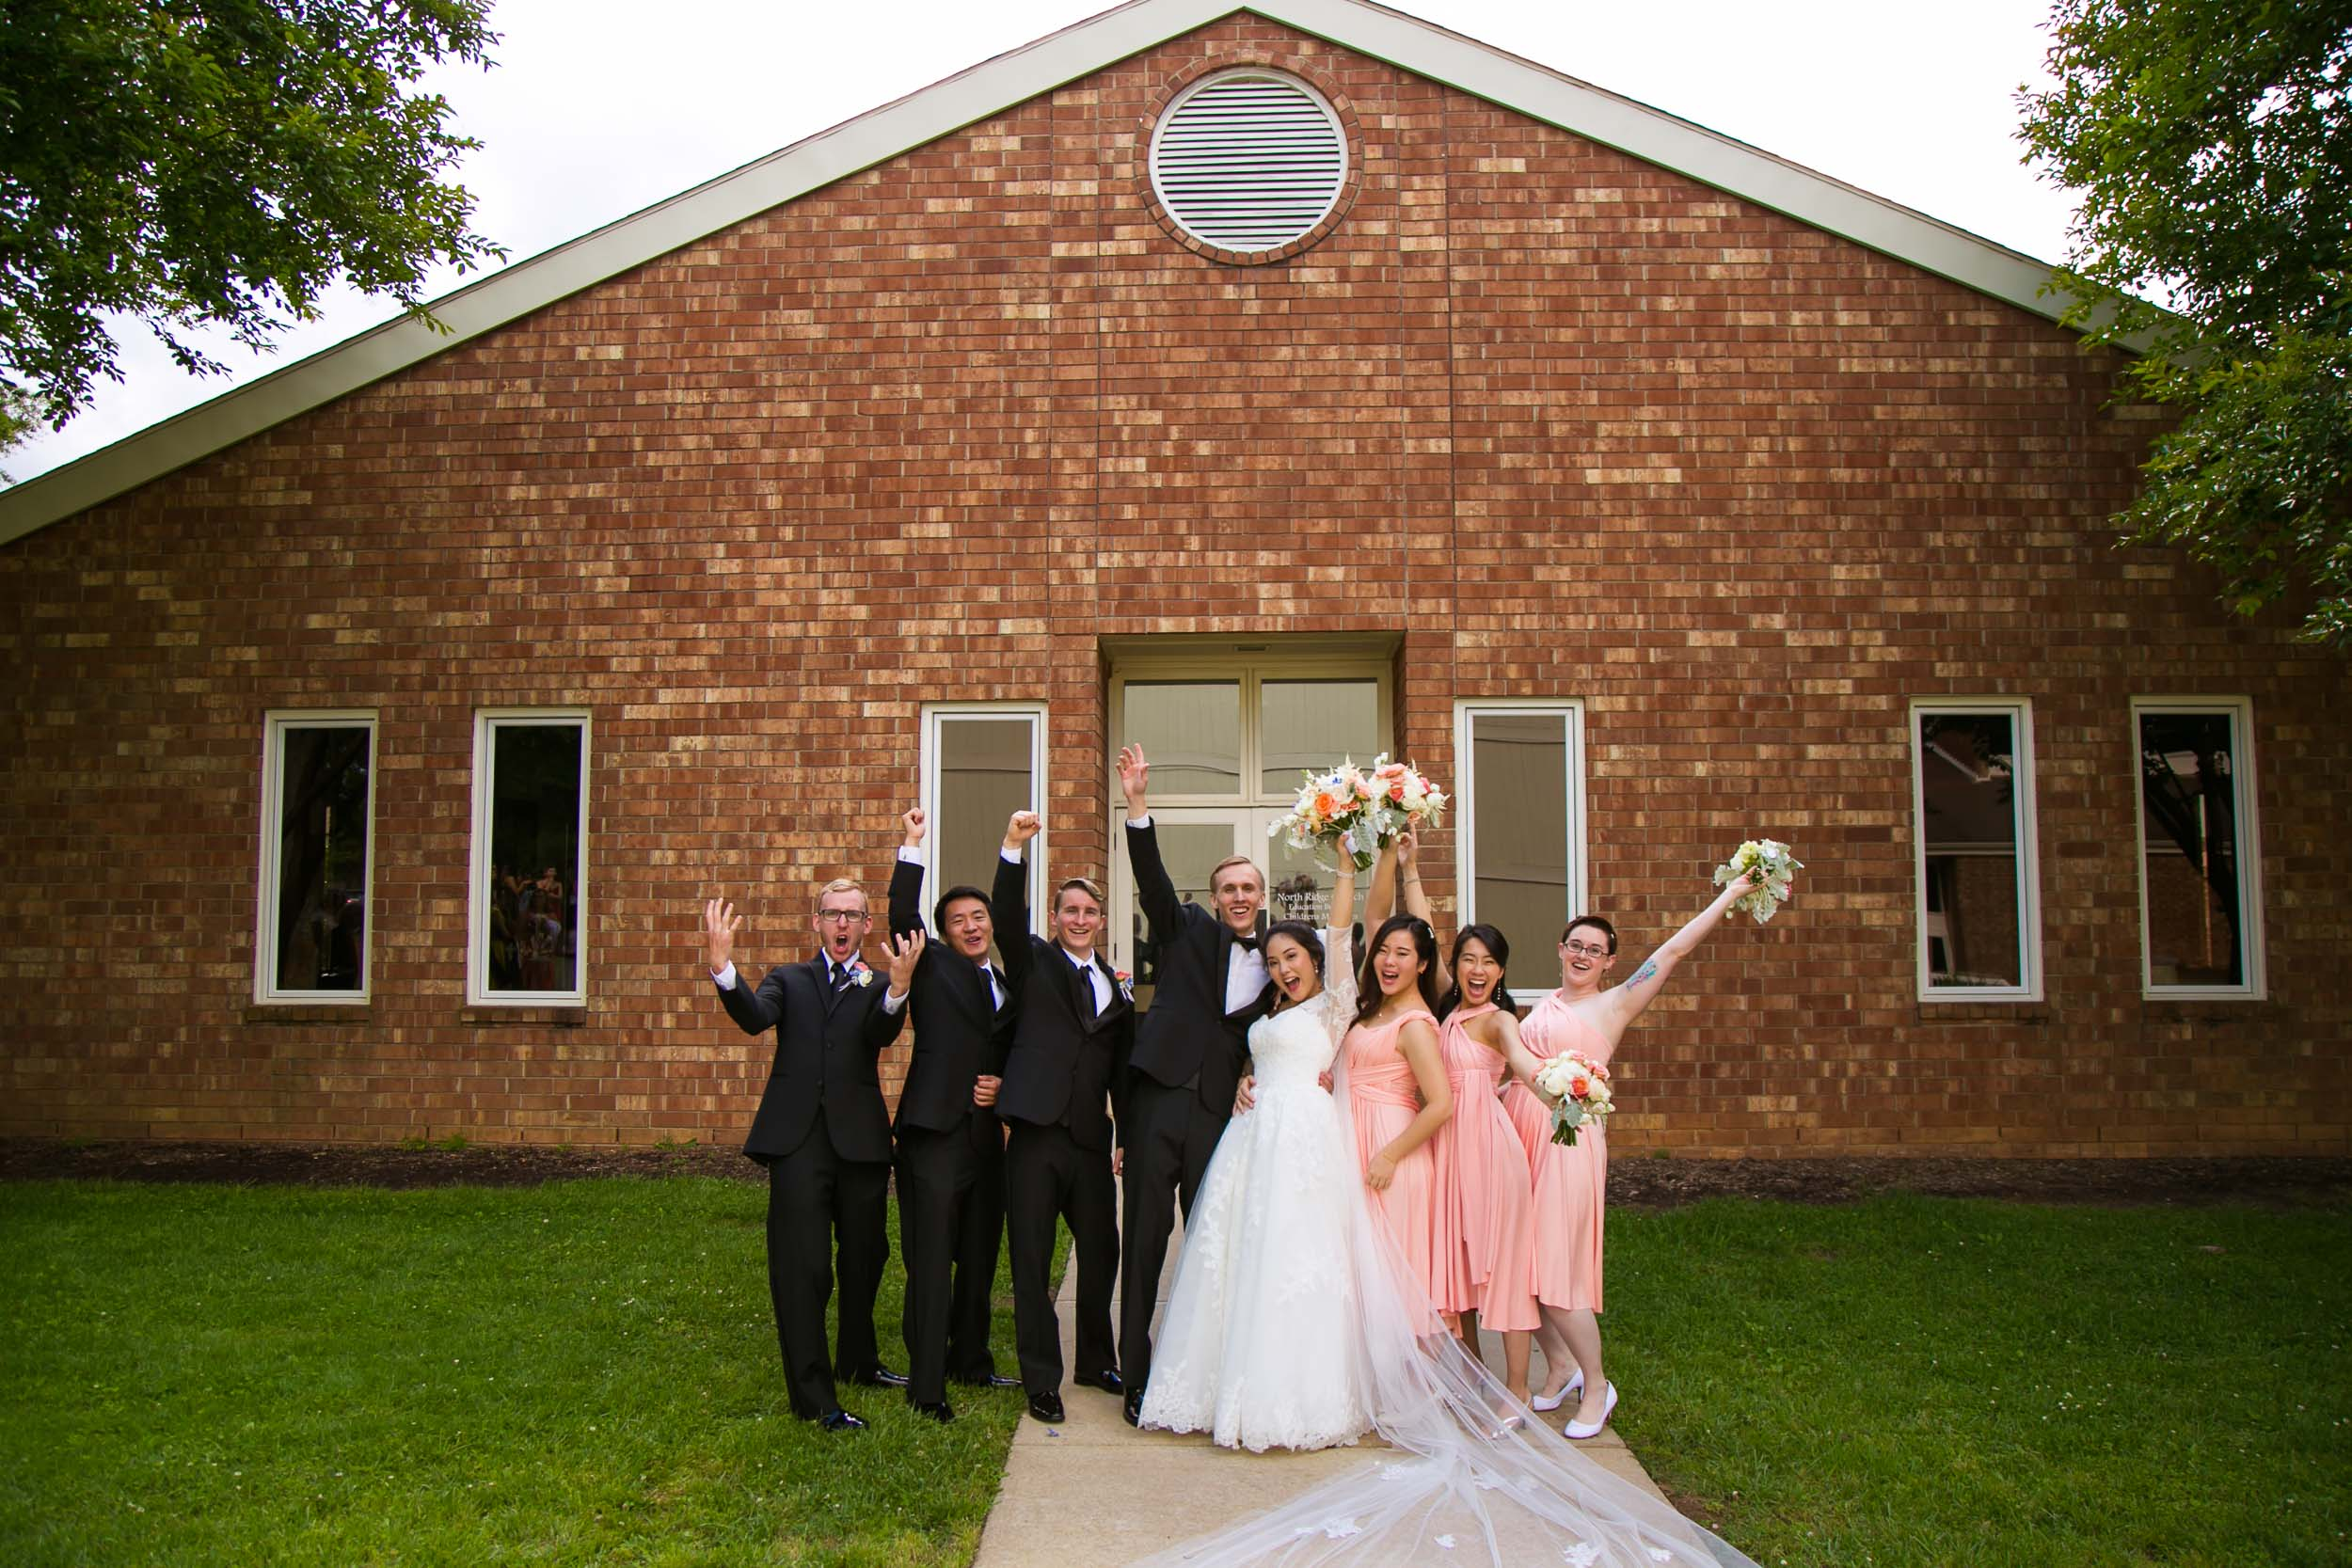 Campbell Lodge Wedding Photography   Wedding Party Group Shot   By G. Lin Photography